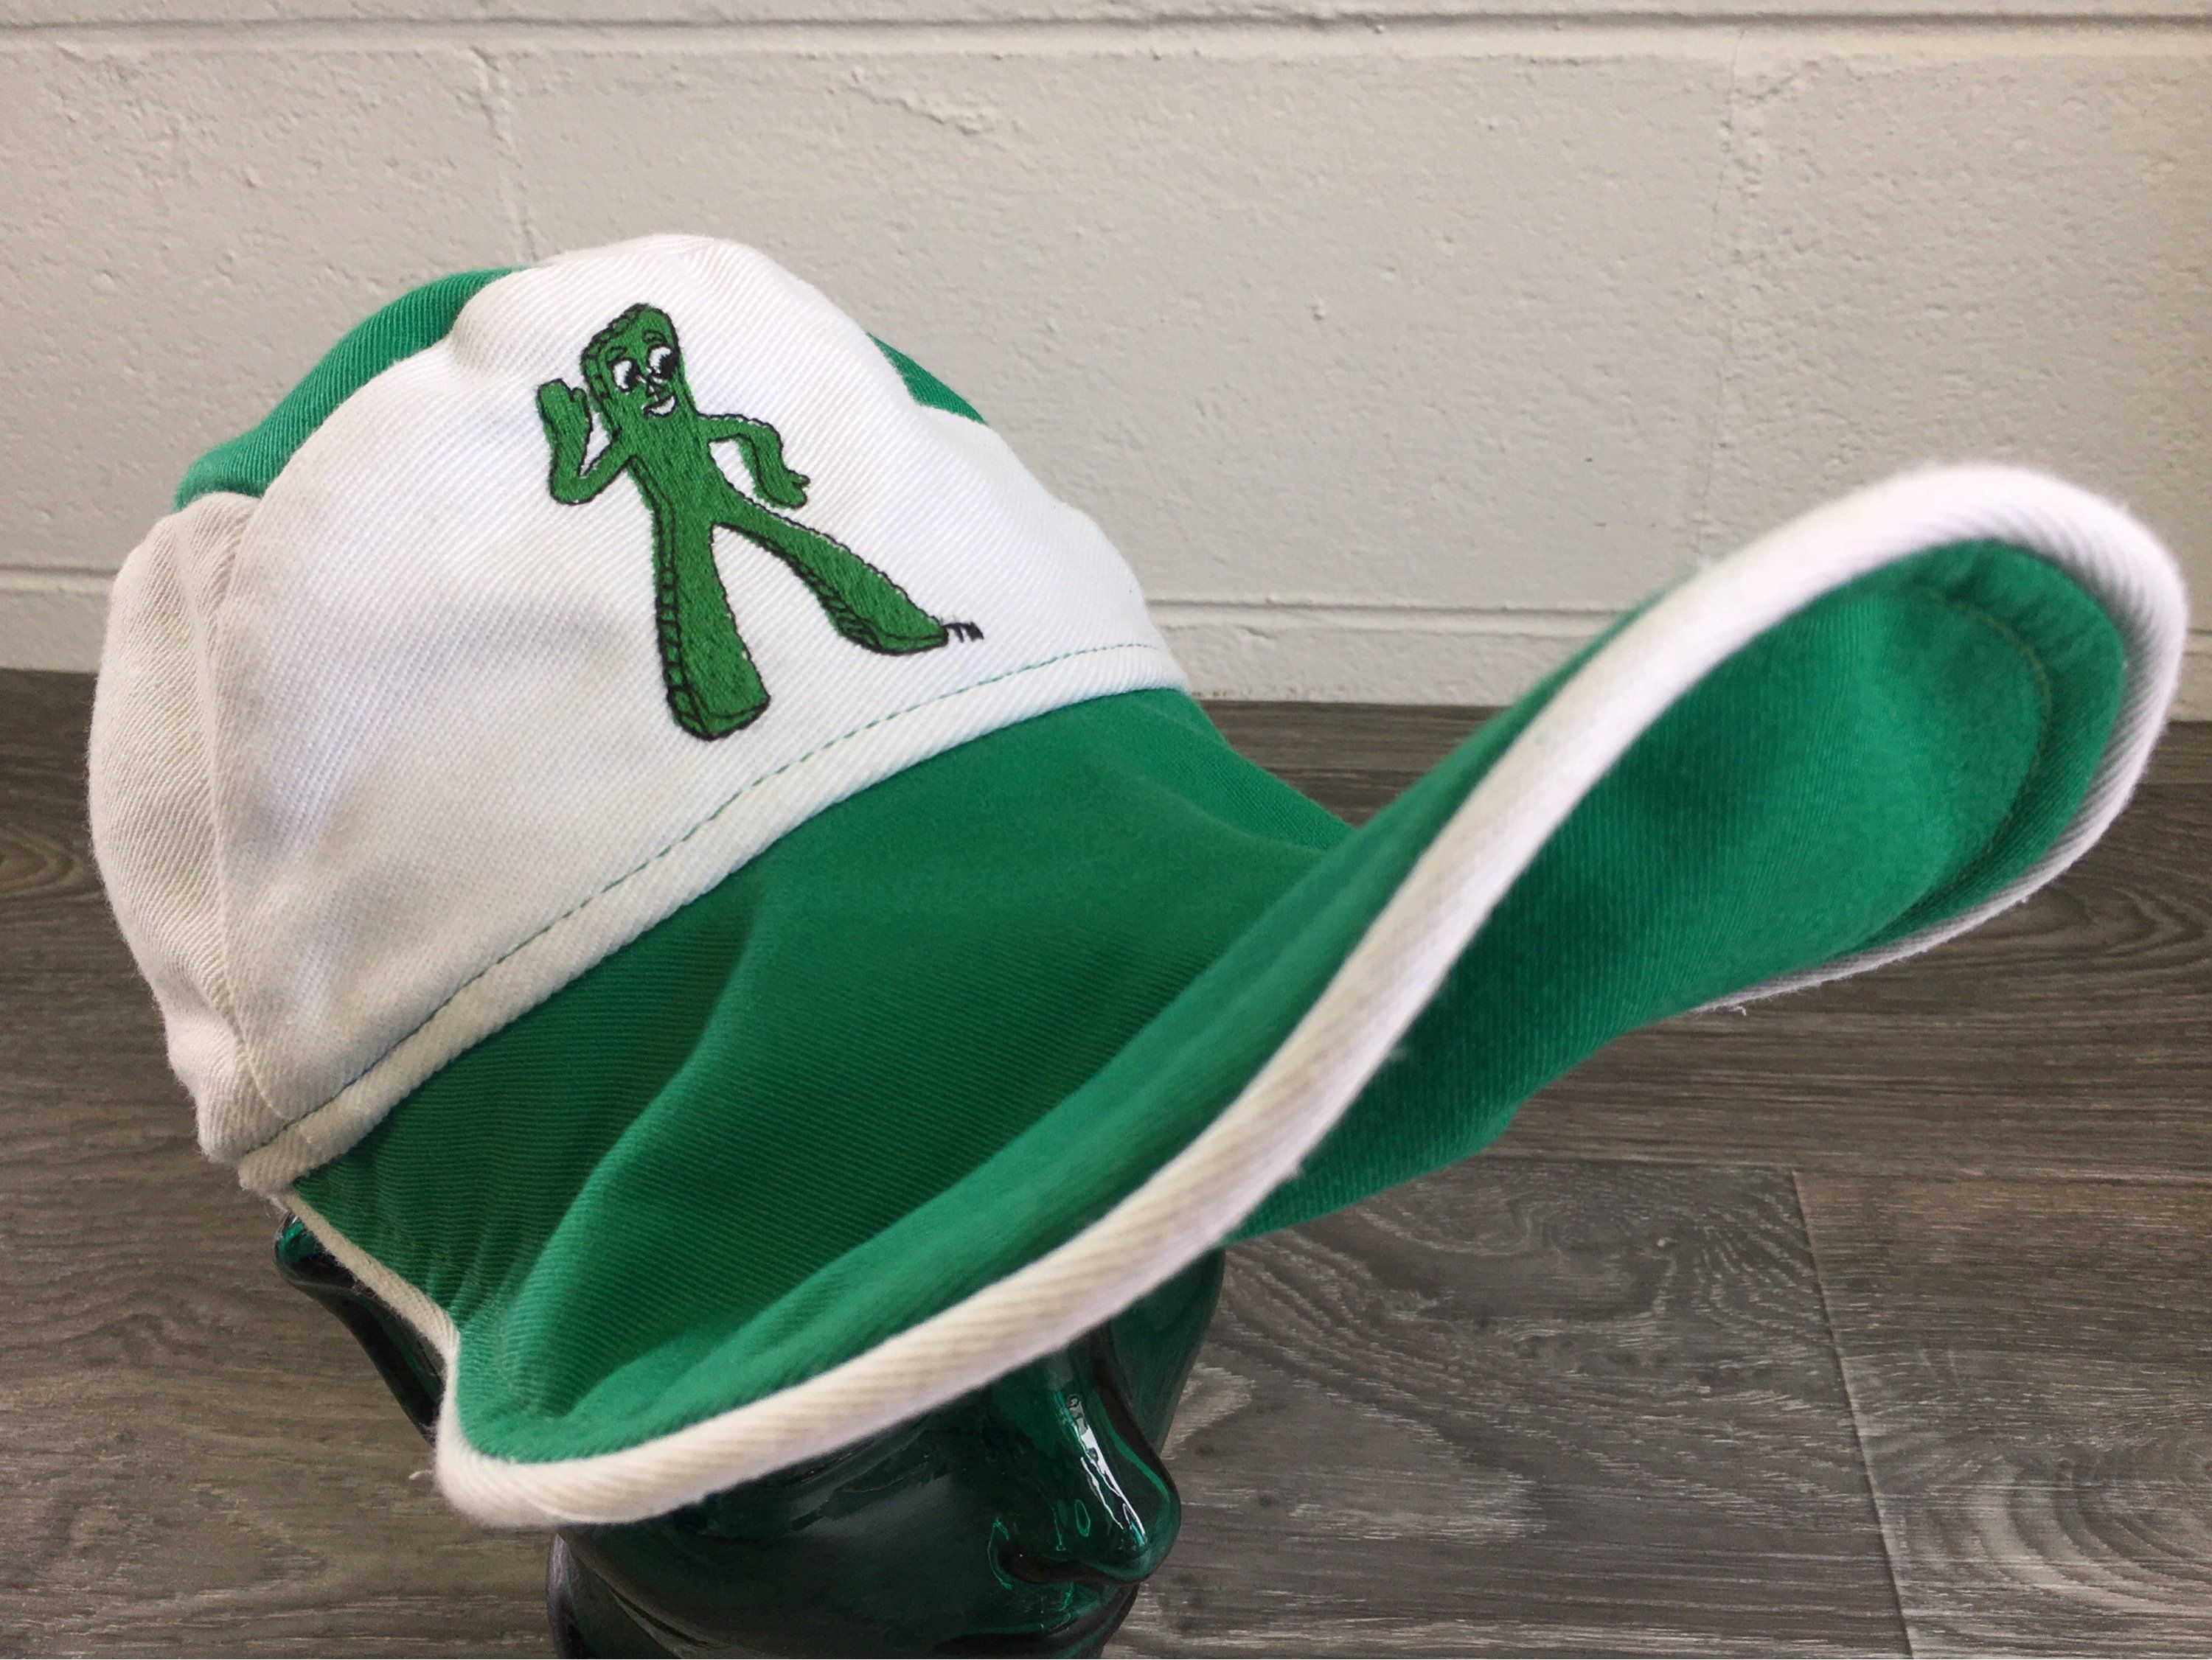 48206c91192 Gumby Hat Vintage 80s USA Made Long Bill Beak Billed Platypus Iconic  Claymation Tv Television Show Rare Fitted Size 7 by sweetVTGtshirt on Etsy